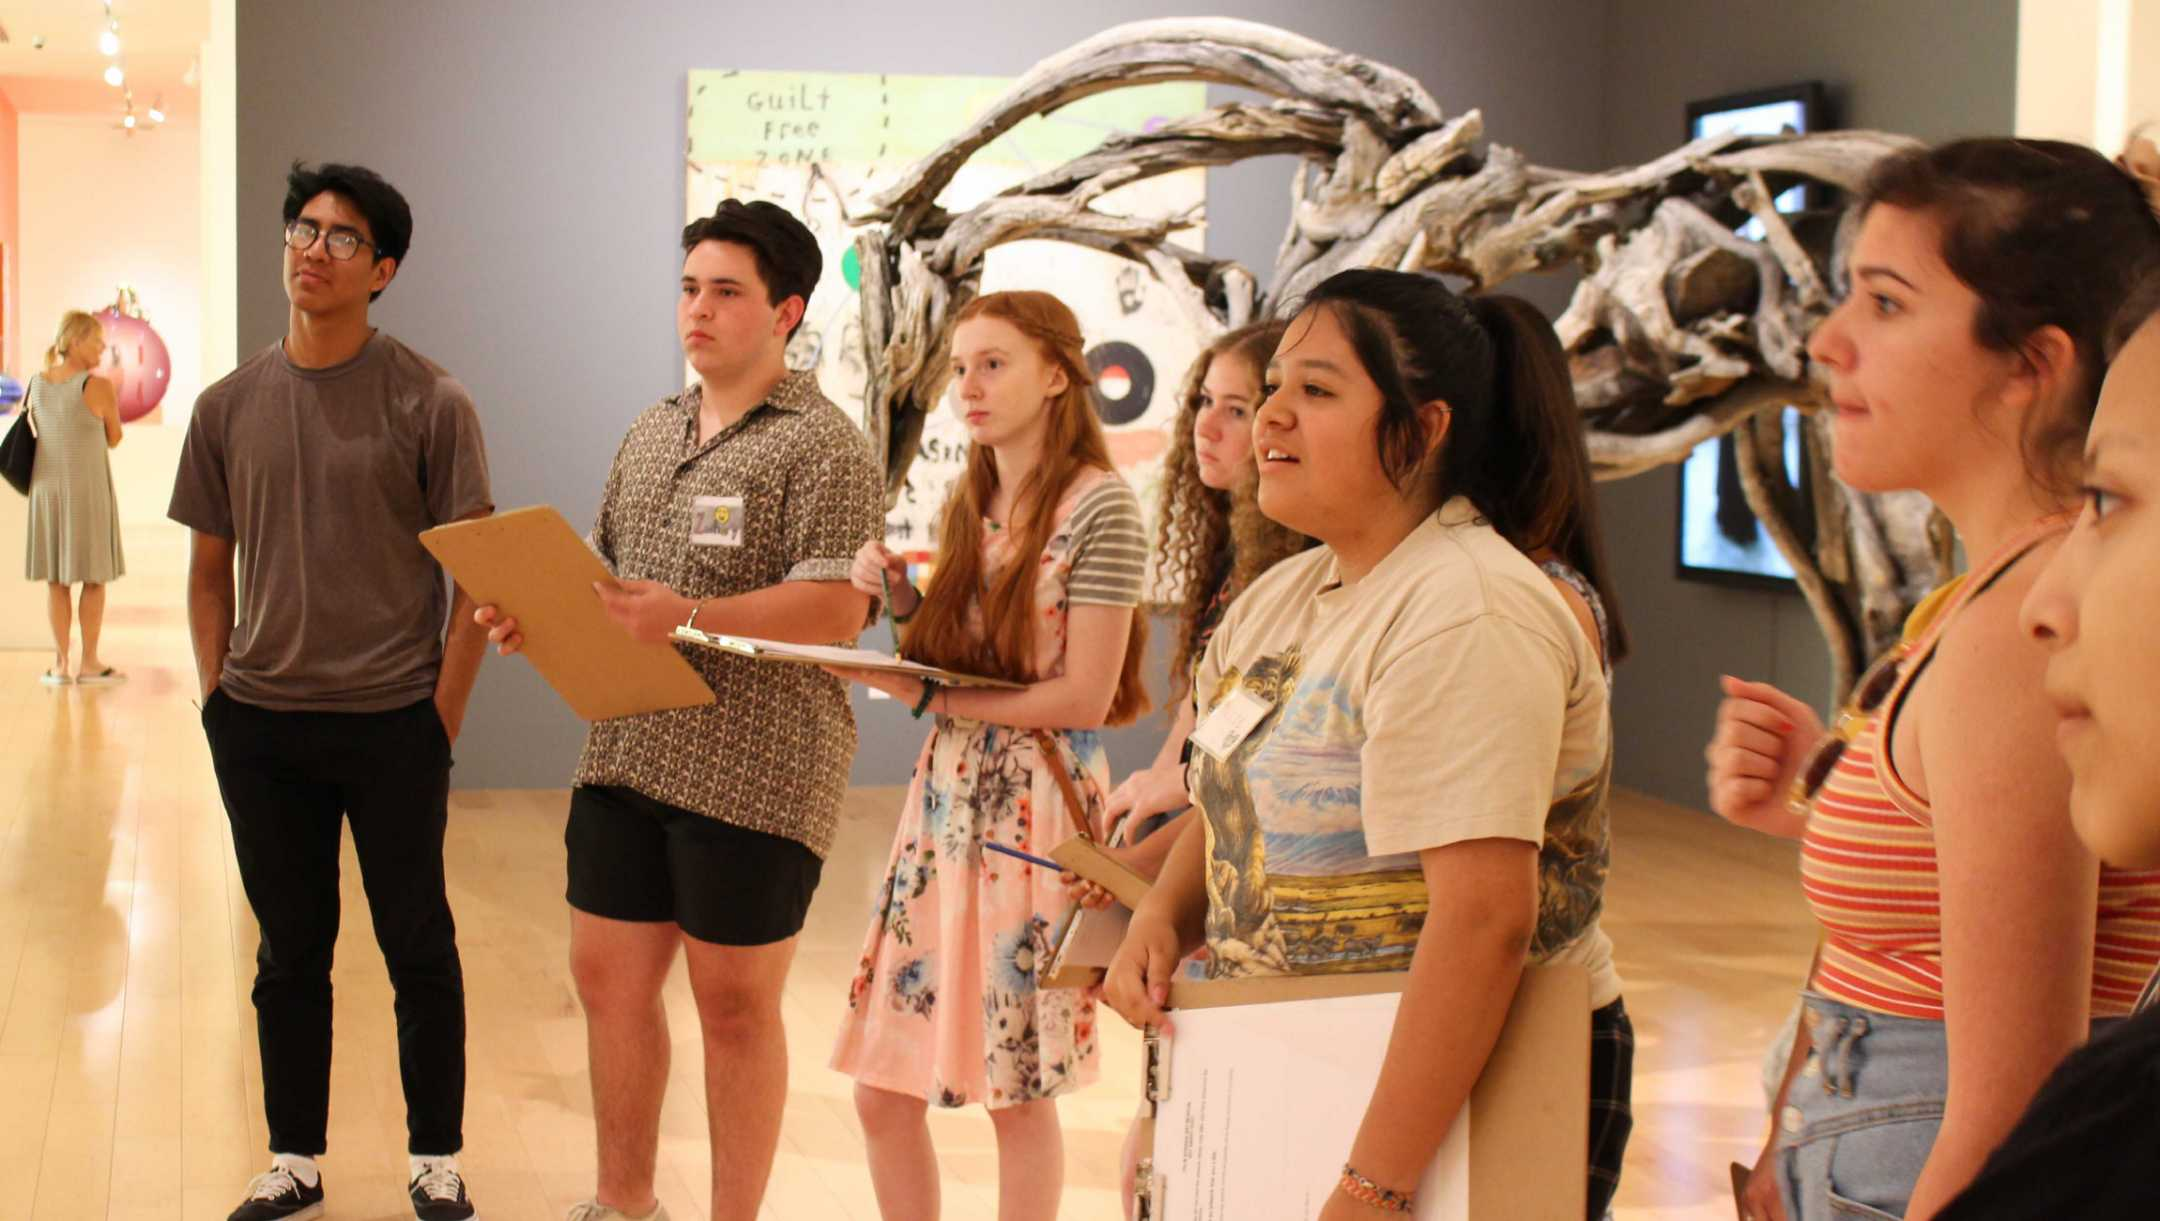 teens learning about art in a gallery